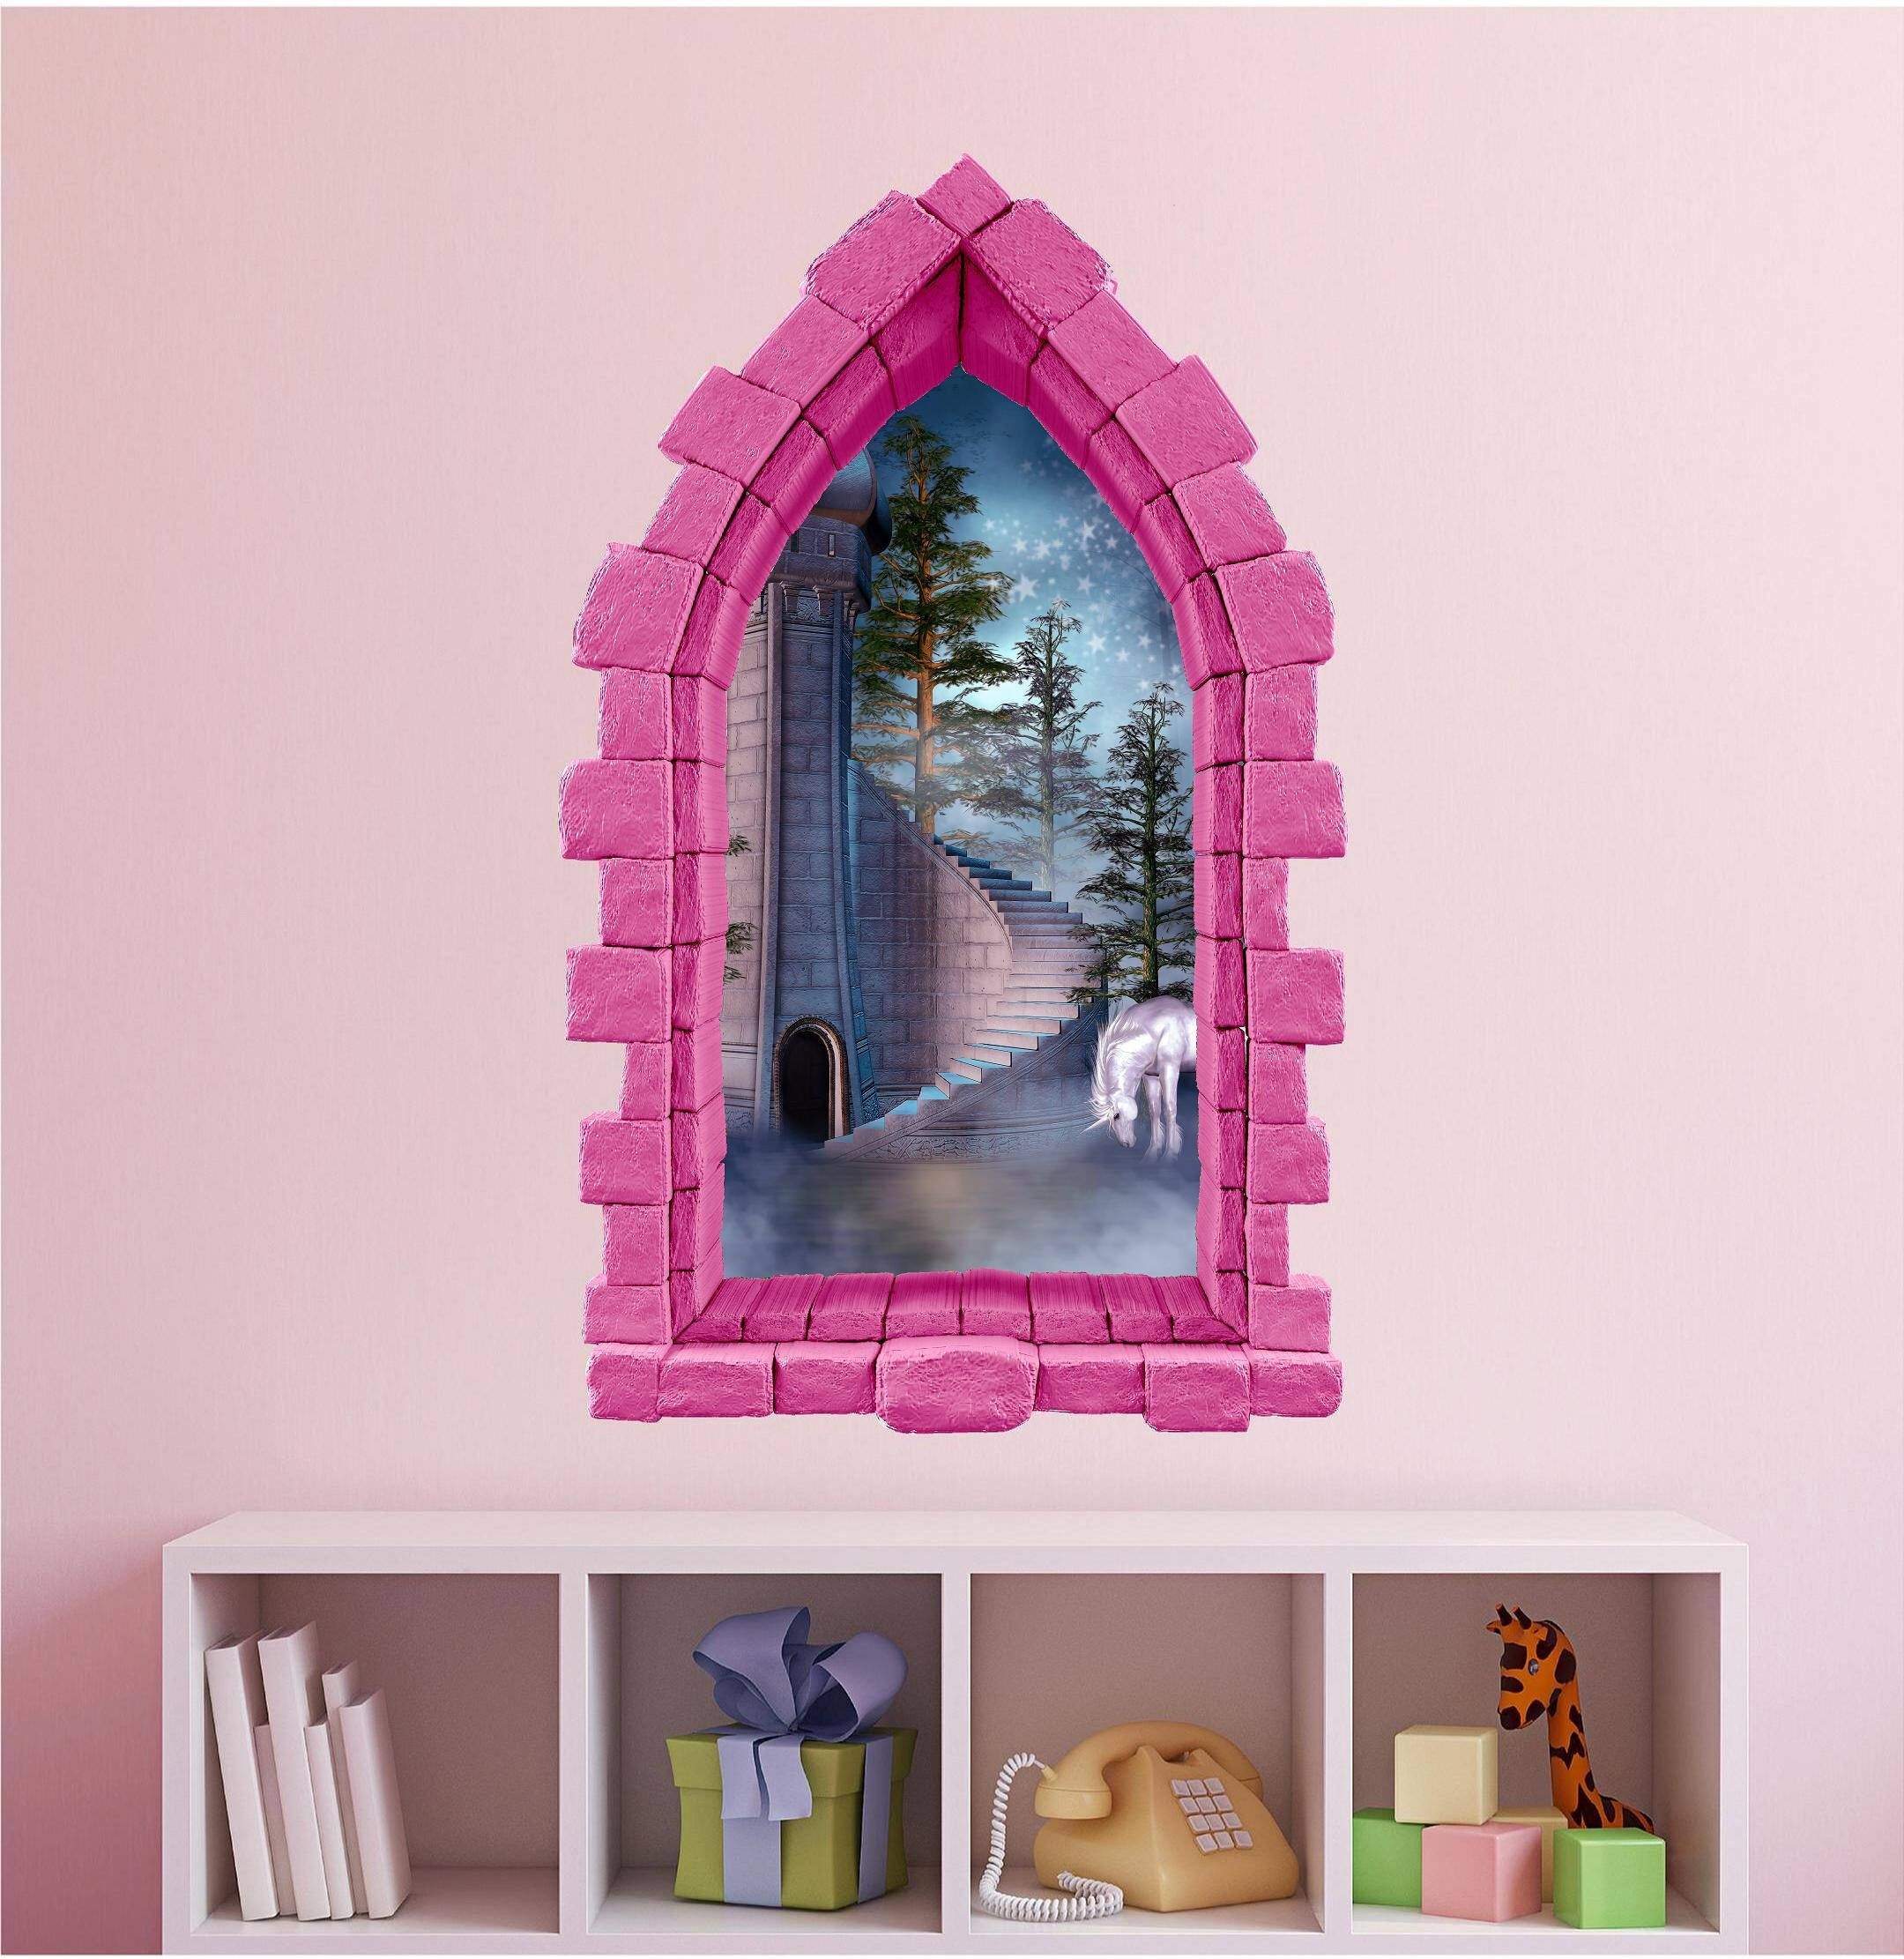 Princess Fantasy Castle Window Wall Decal Fairytale Castle u0026 Unicorn Nursery Decor 3D Window Decals for Girls Kids Wall Decals Pink & Princess Fantasy Castle Window Wall Decal Fairytale Castle ...